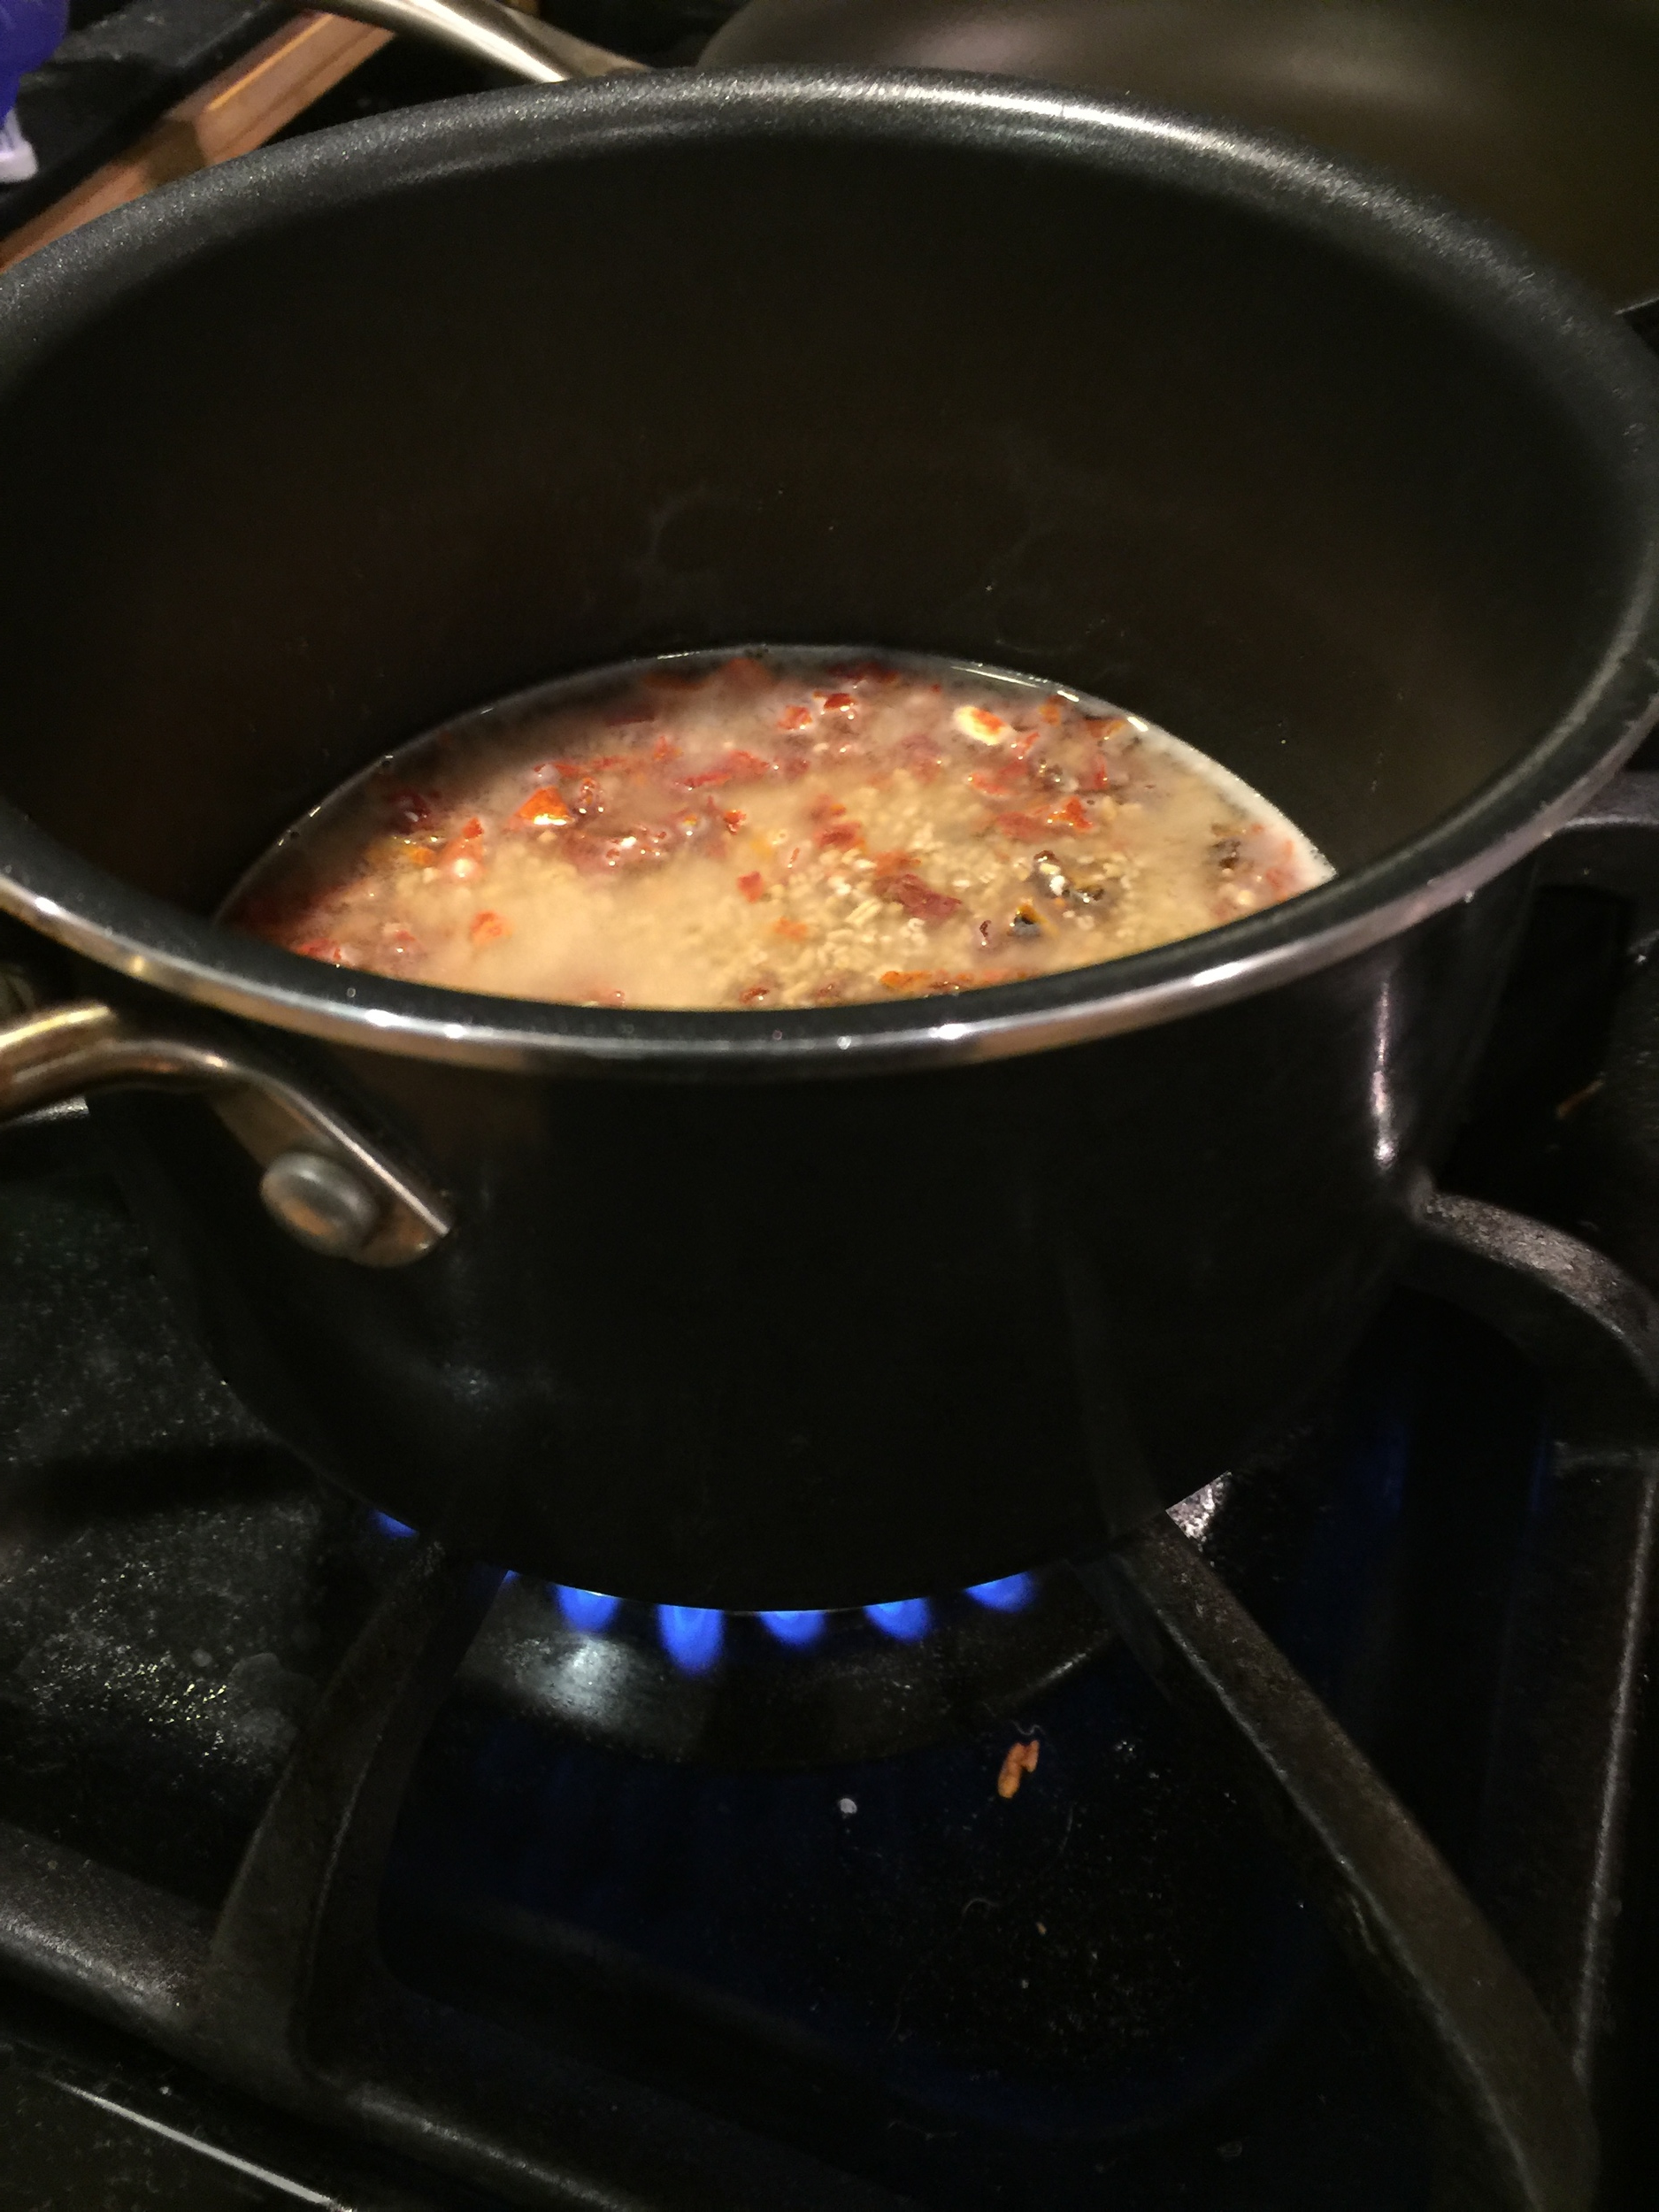 boil first, then simmer for 25 minutes, stirring every 2 minutes...